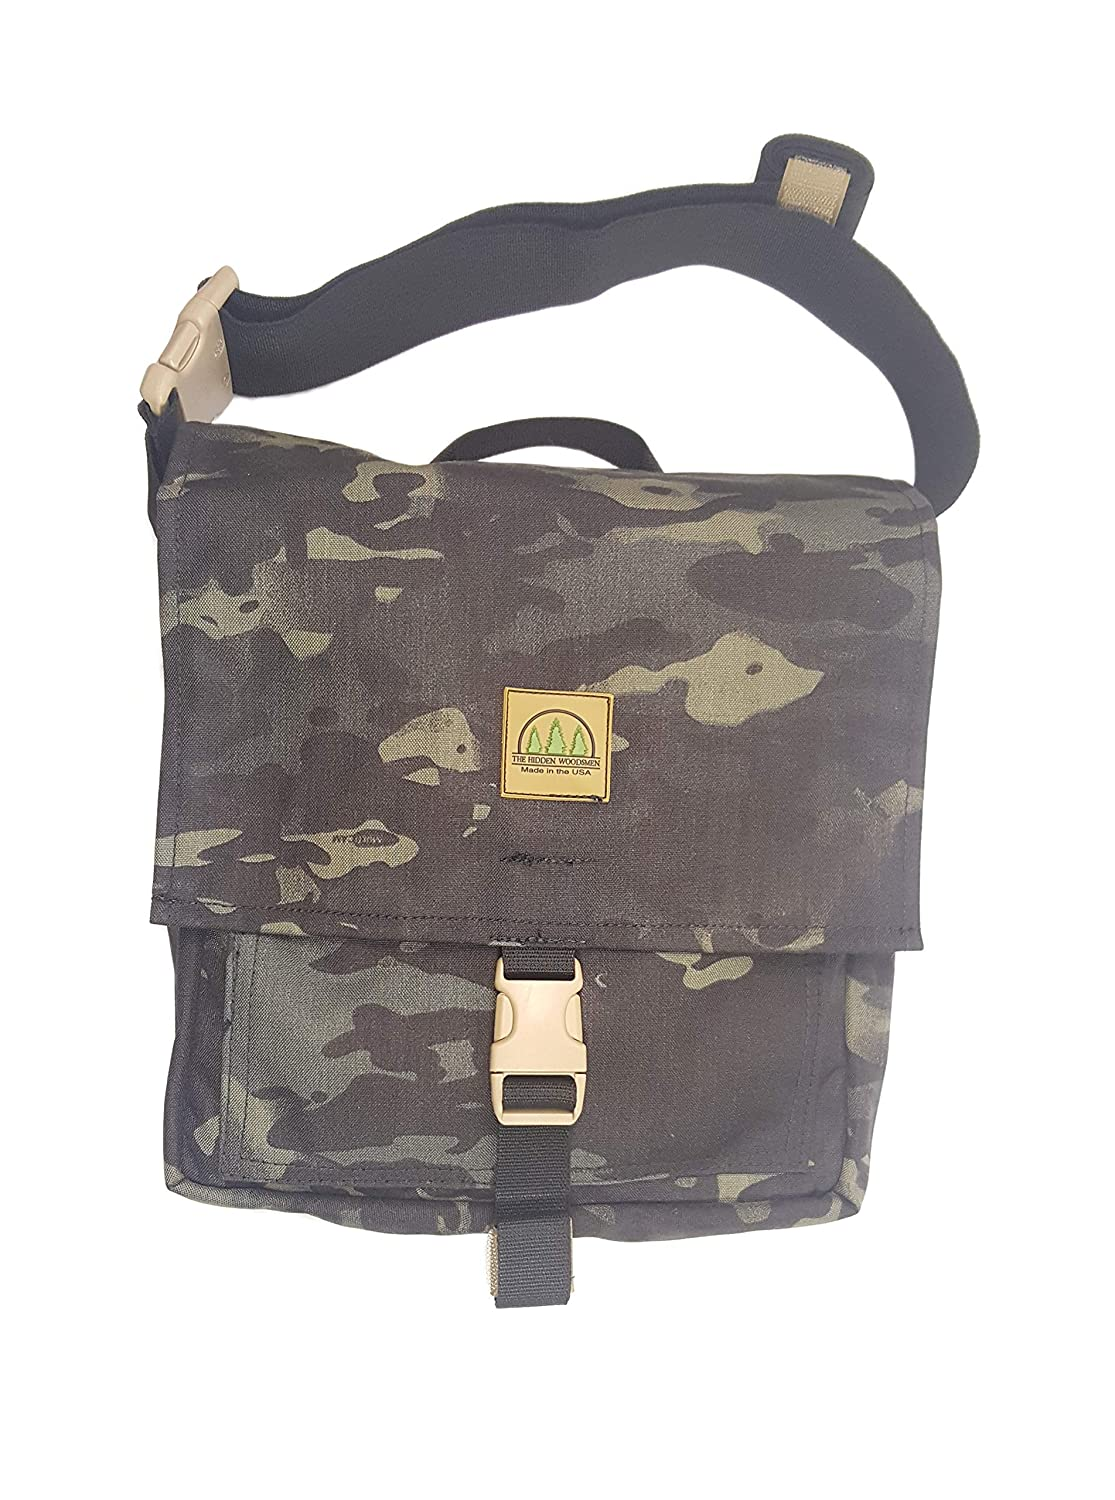 The Hidden Woodsmen Haversack ブッシュクラフトパック バックパック  Multicam Black B07HVY2JBF